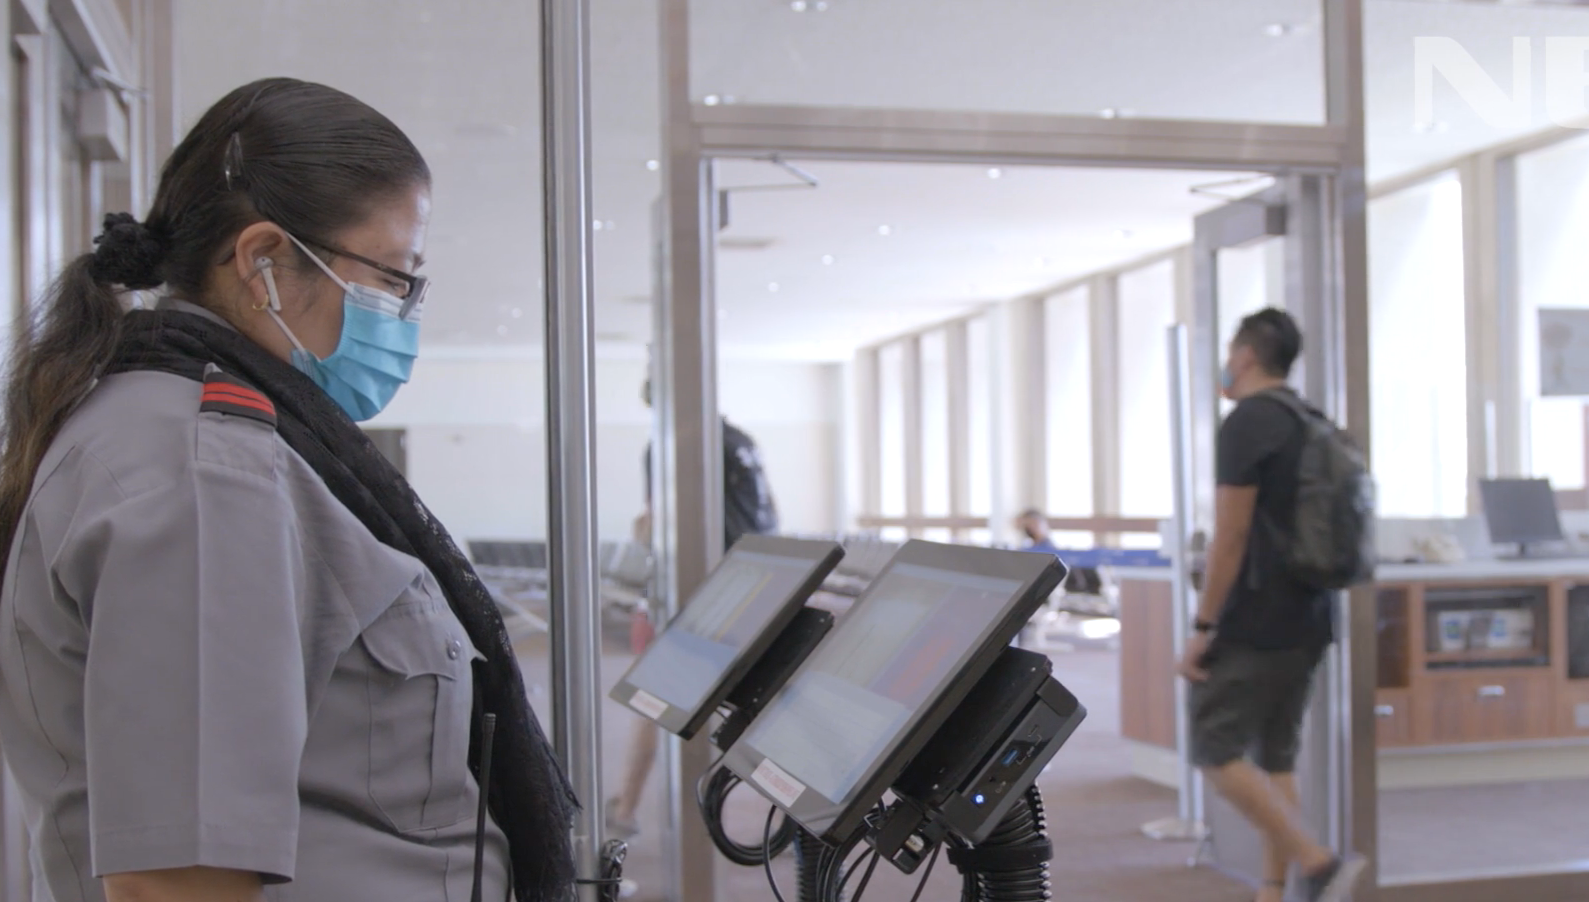 Facial Imaging Technology for COVID-19 Detection Purposes Underway at 5 Hawaiʻi Airports